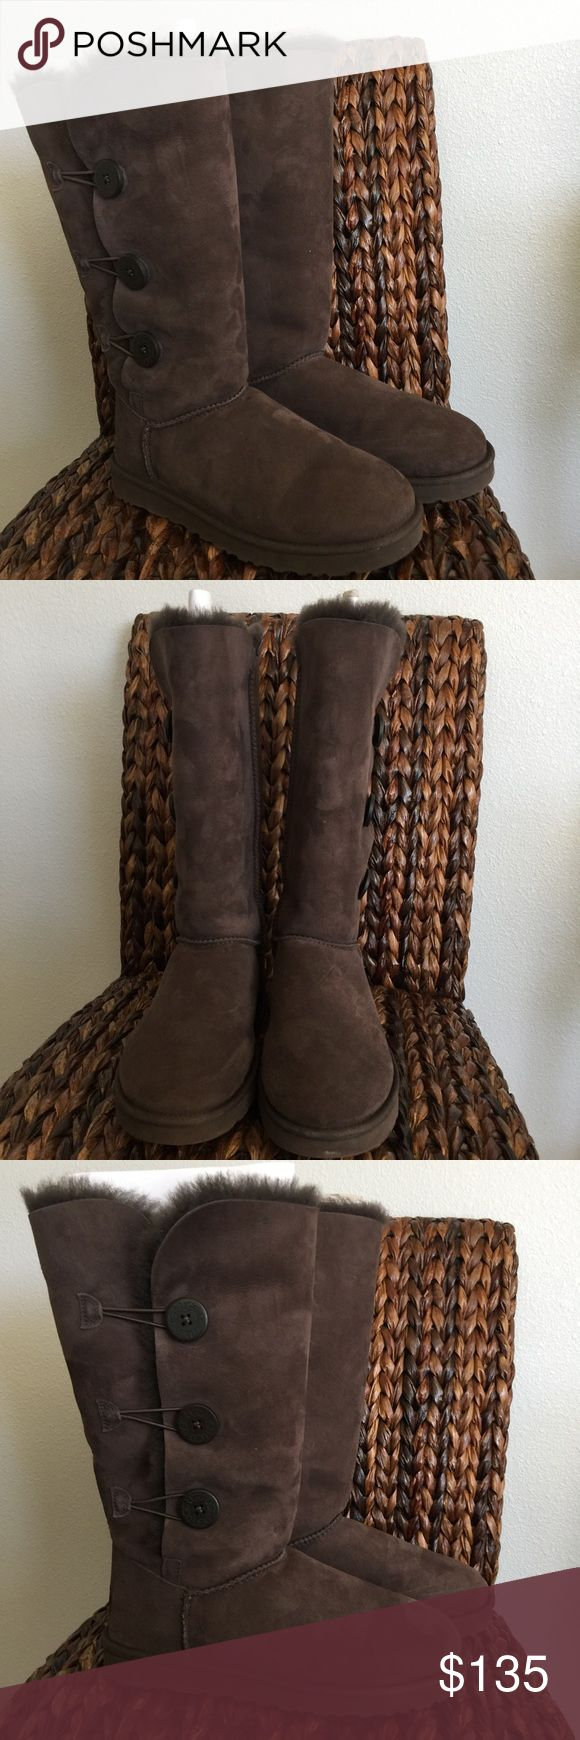 UGG Triplet Chocolate Bailey Button Boots Brand New and without the original box, but comes with an UGG box. 100% Authentic. Color: Chocolate Size: 10 UGG Bailey Button Triplet is a fresh take on Uggs Classic Tall model. Featuring wooden buttons with UGG logo with elastic band closures. These boots can be worn tall or cuffed to expose cozy shearling interior. Suede upper, fully sheepskin lined, cushy foam insole covered with UGGpure, and patented EVA outsole. UGG Shoes Winter & Rain Boots